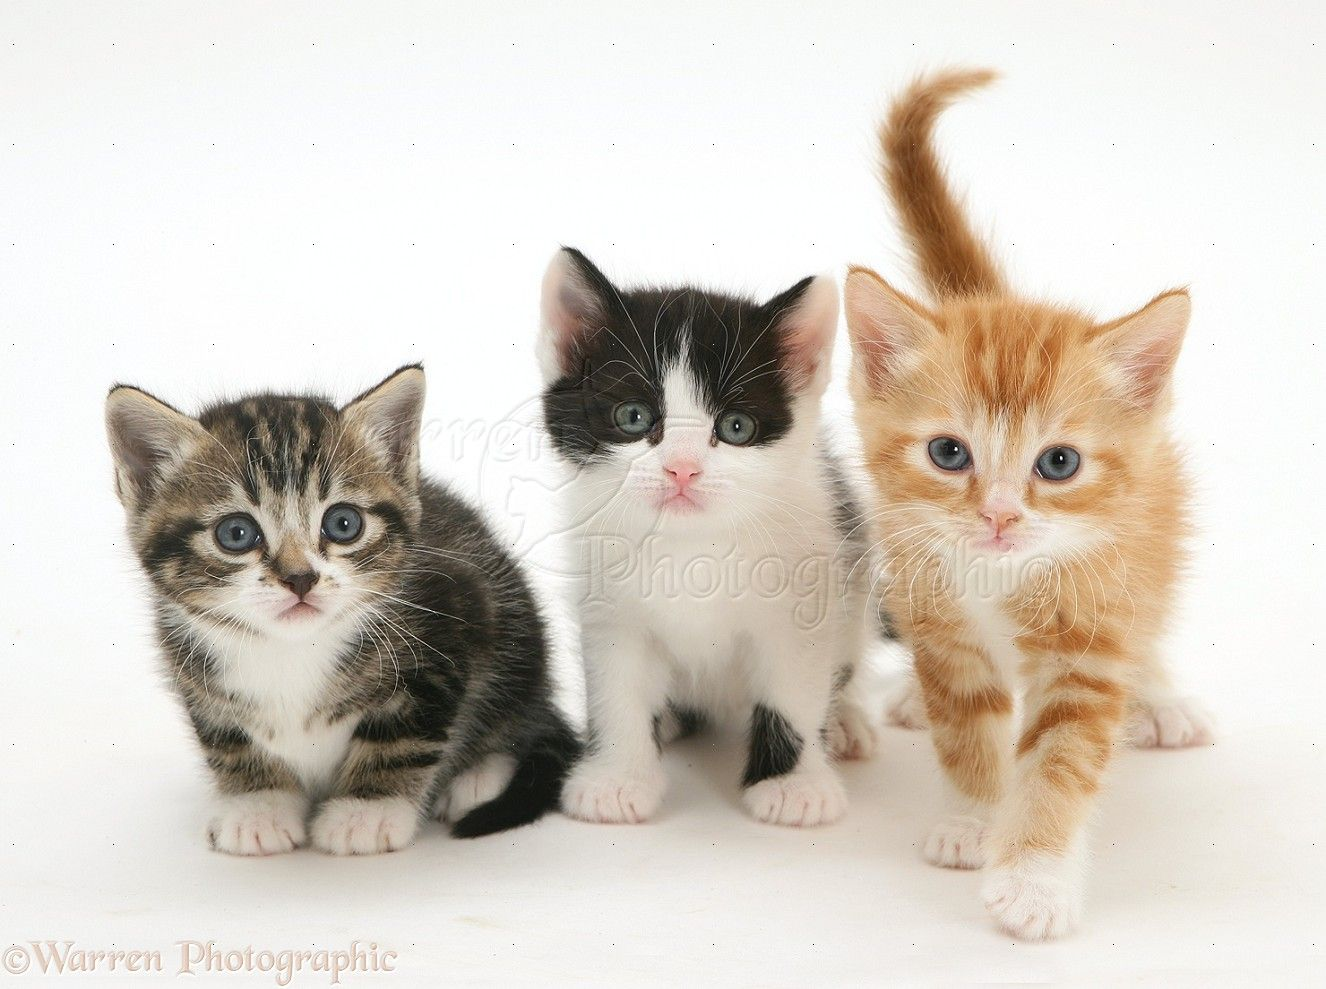 WP Three kittens one tabby and white one ginger and one